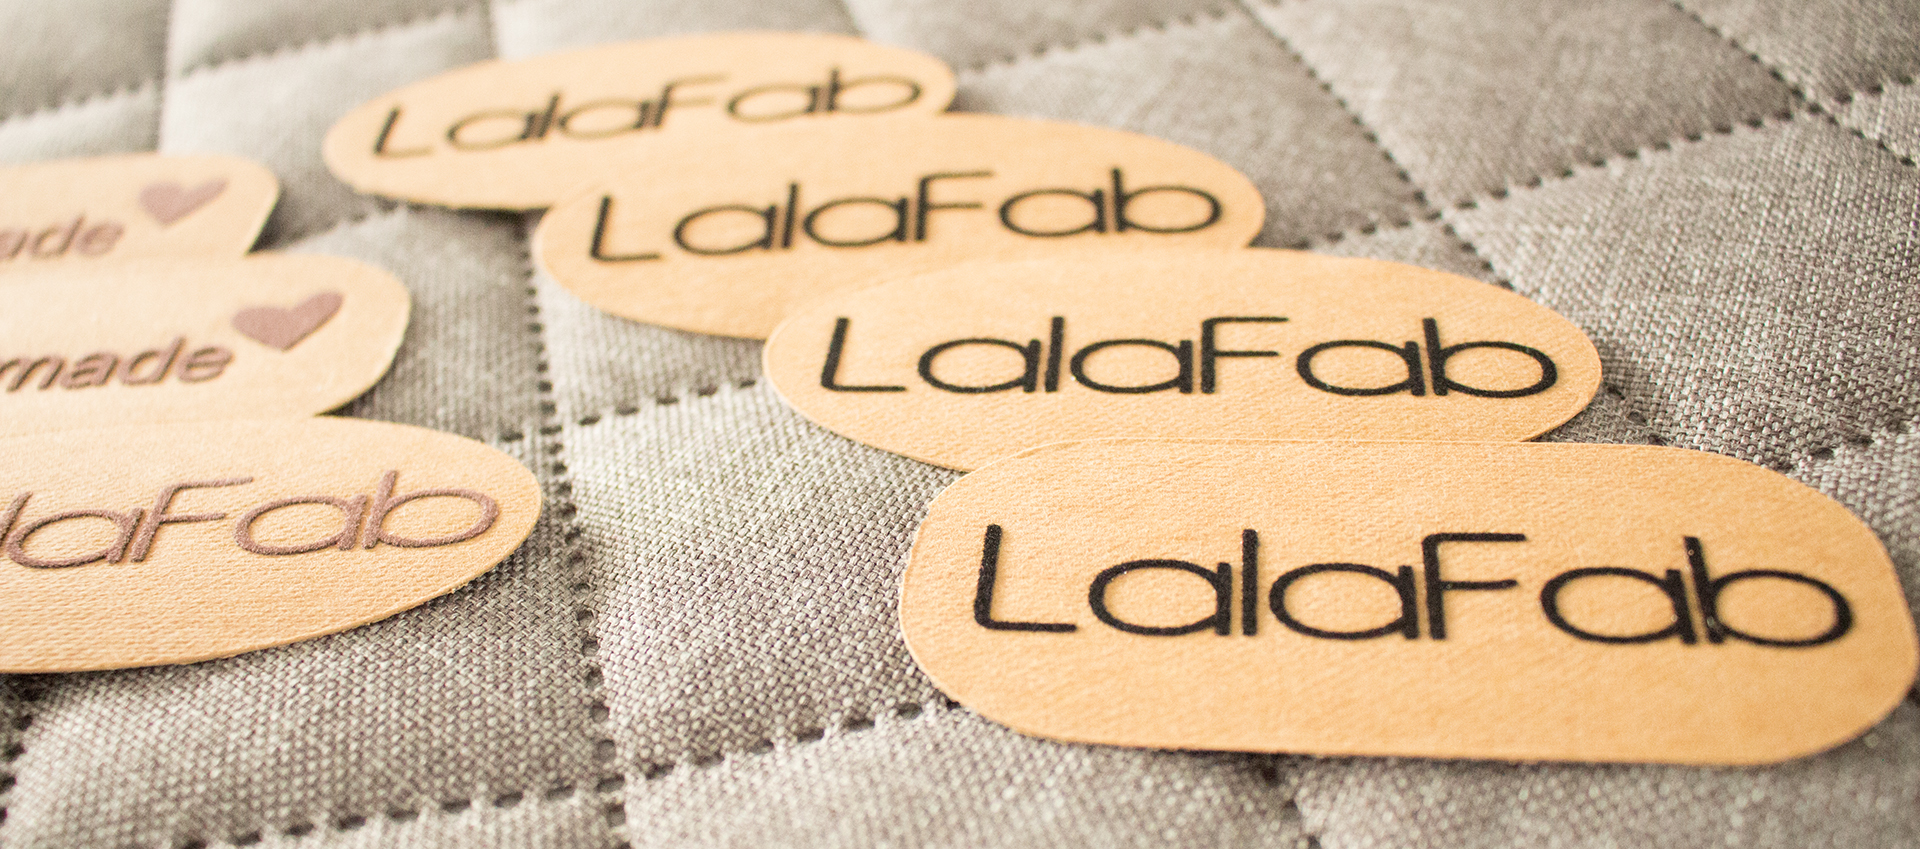 mini diy labels aus snap pap selbst herstellen lalafab. Black Bedroom Furniture Sets. Home Design Ideas